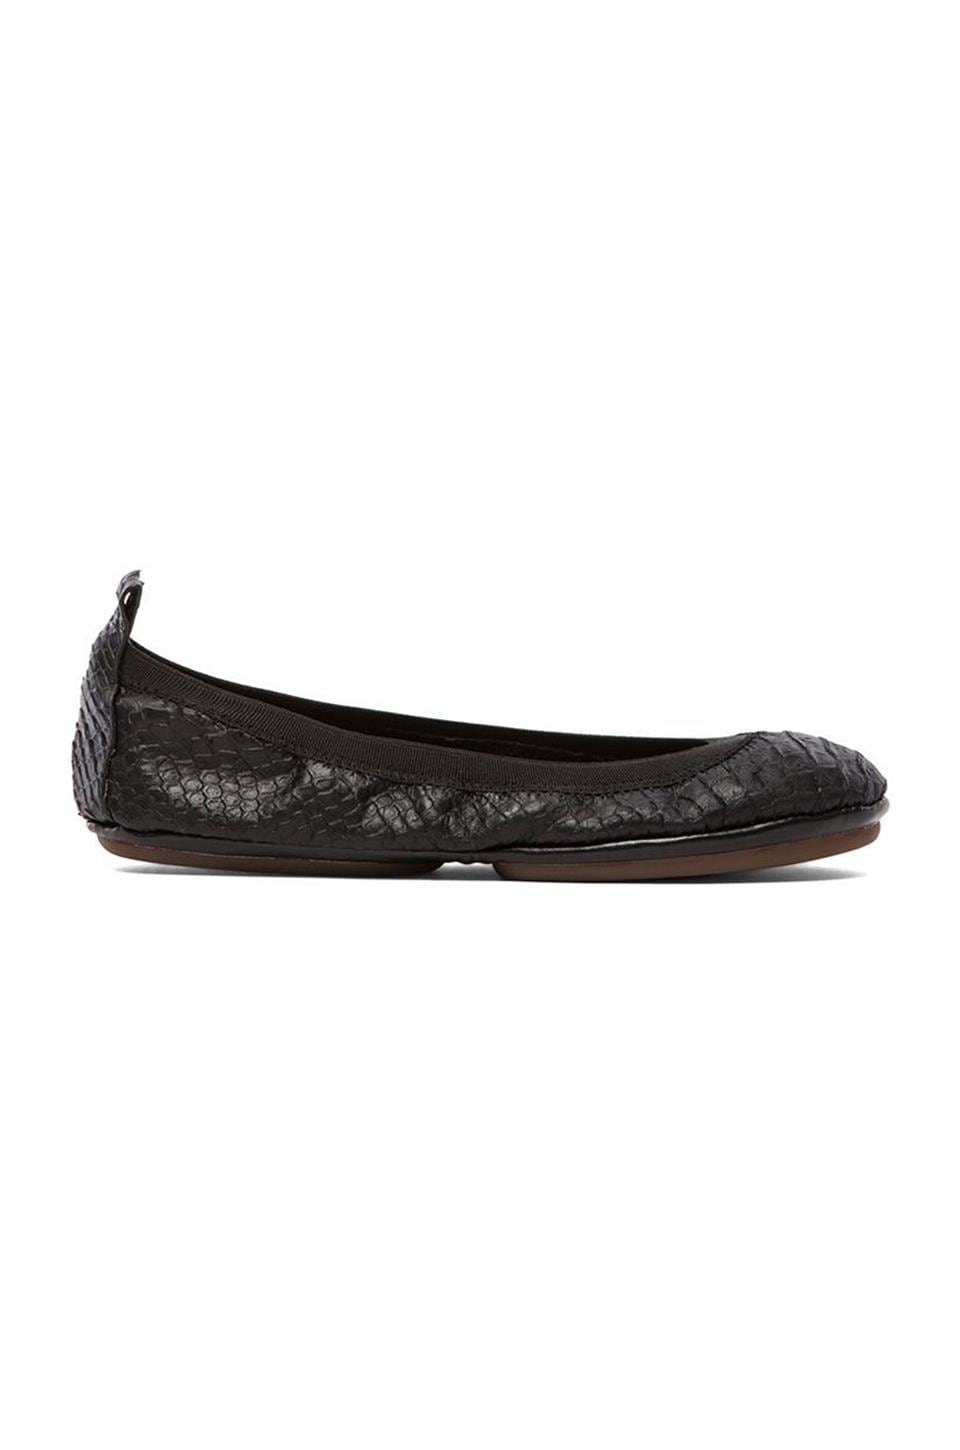 Yosi Samra Croco in Black